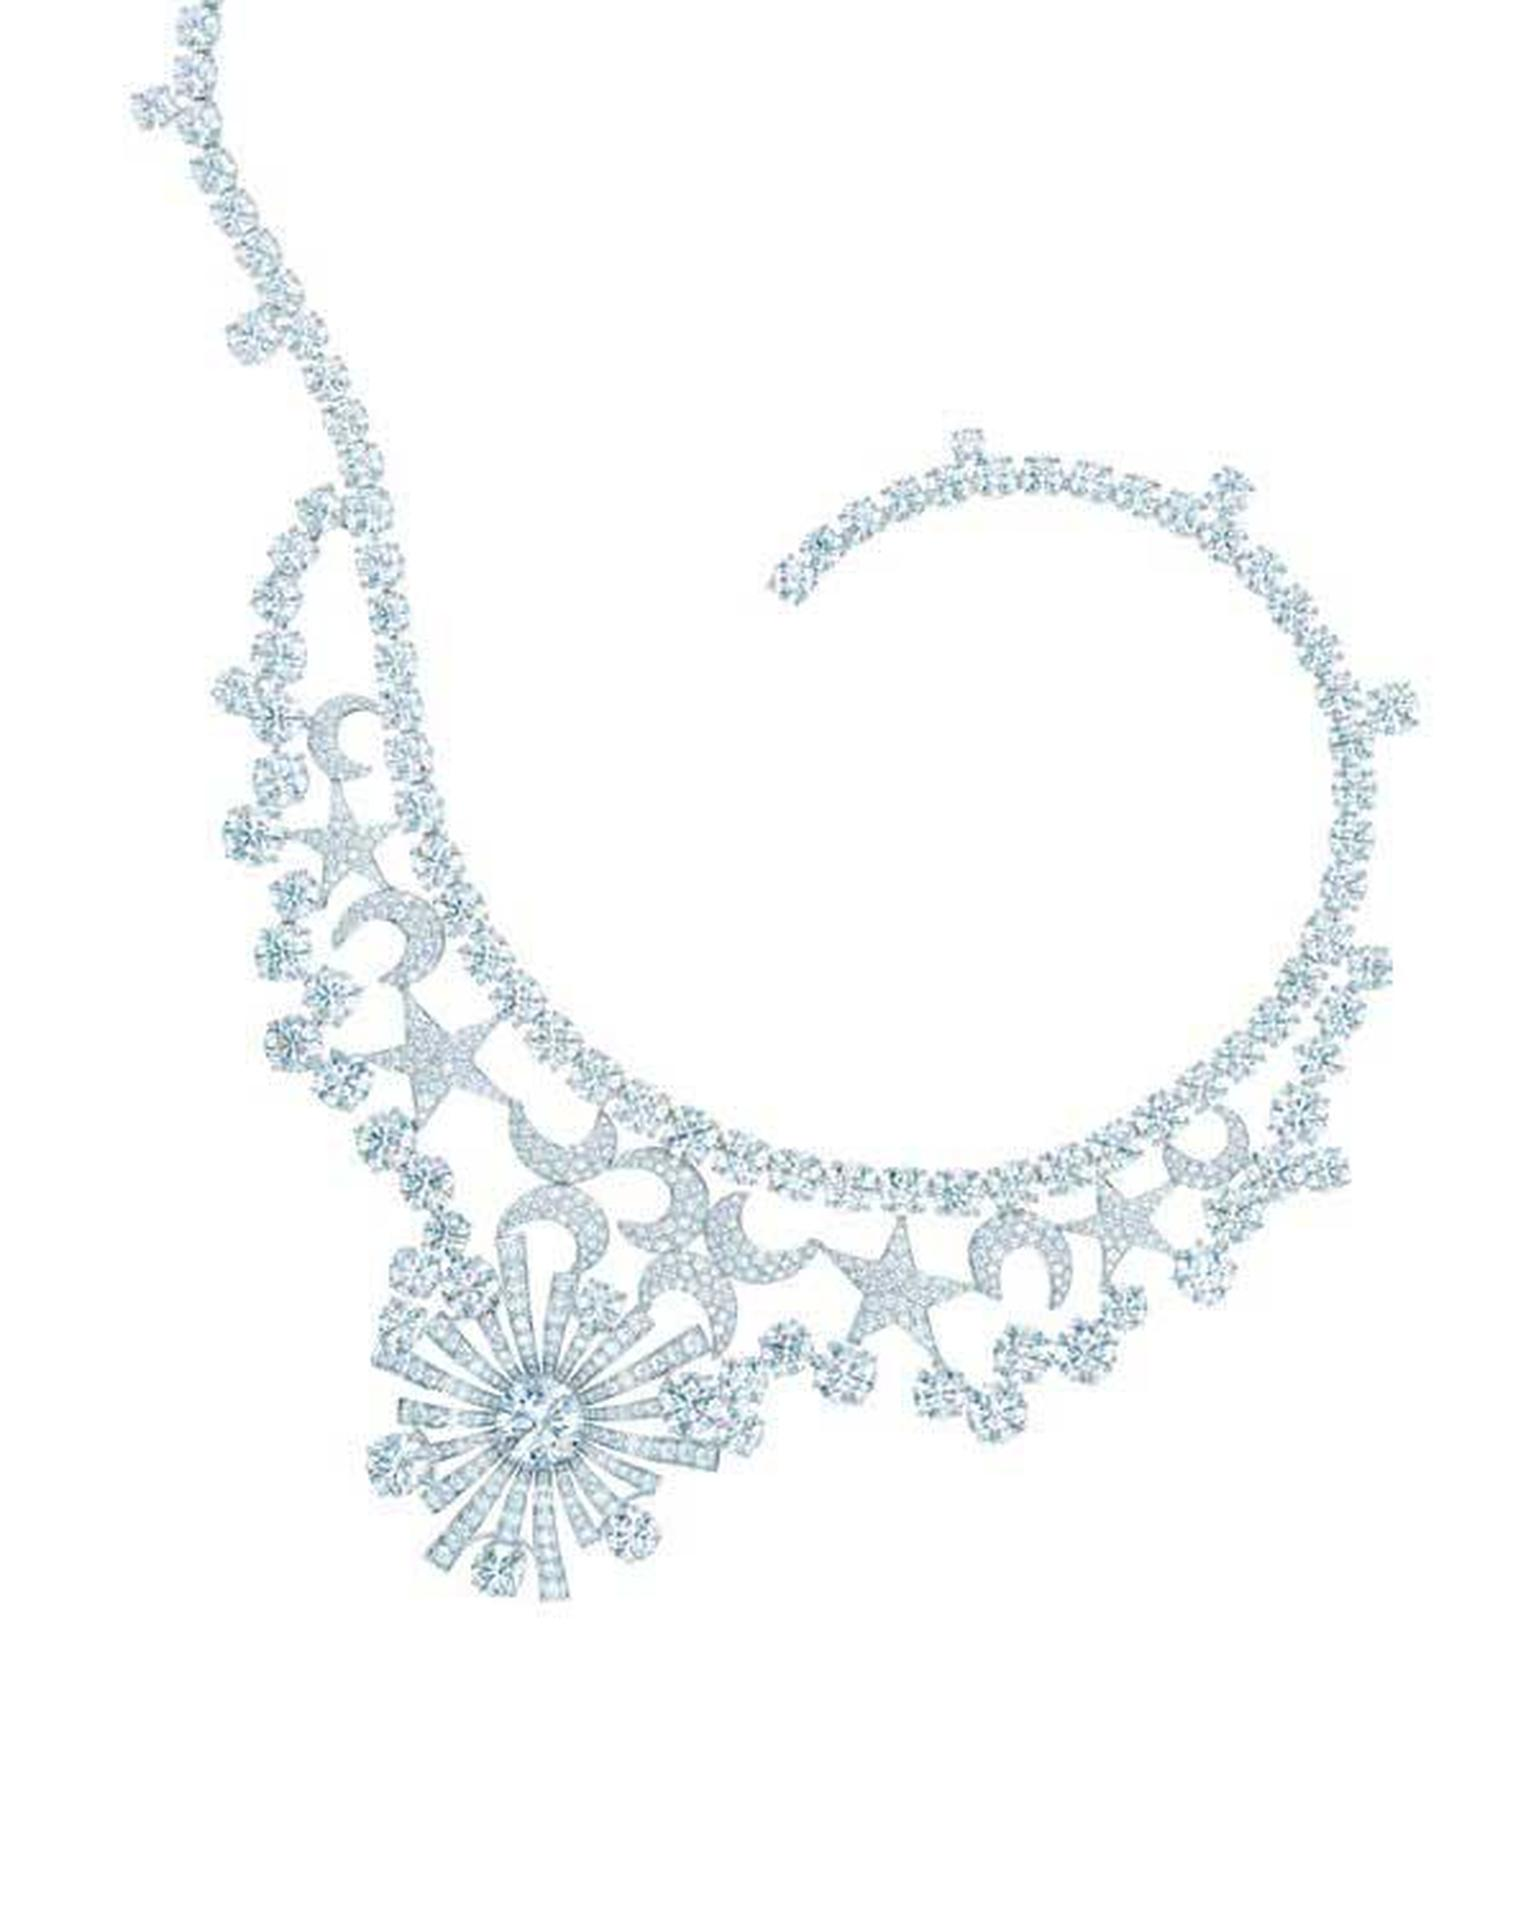 Jean Schlumberger designed the iconic Stars and Moons necklace for Tiffany & Co in the 1950s. The necklace was recreated in celebration of Tiffany's 175th anniversary in 2012.